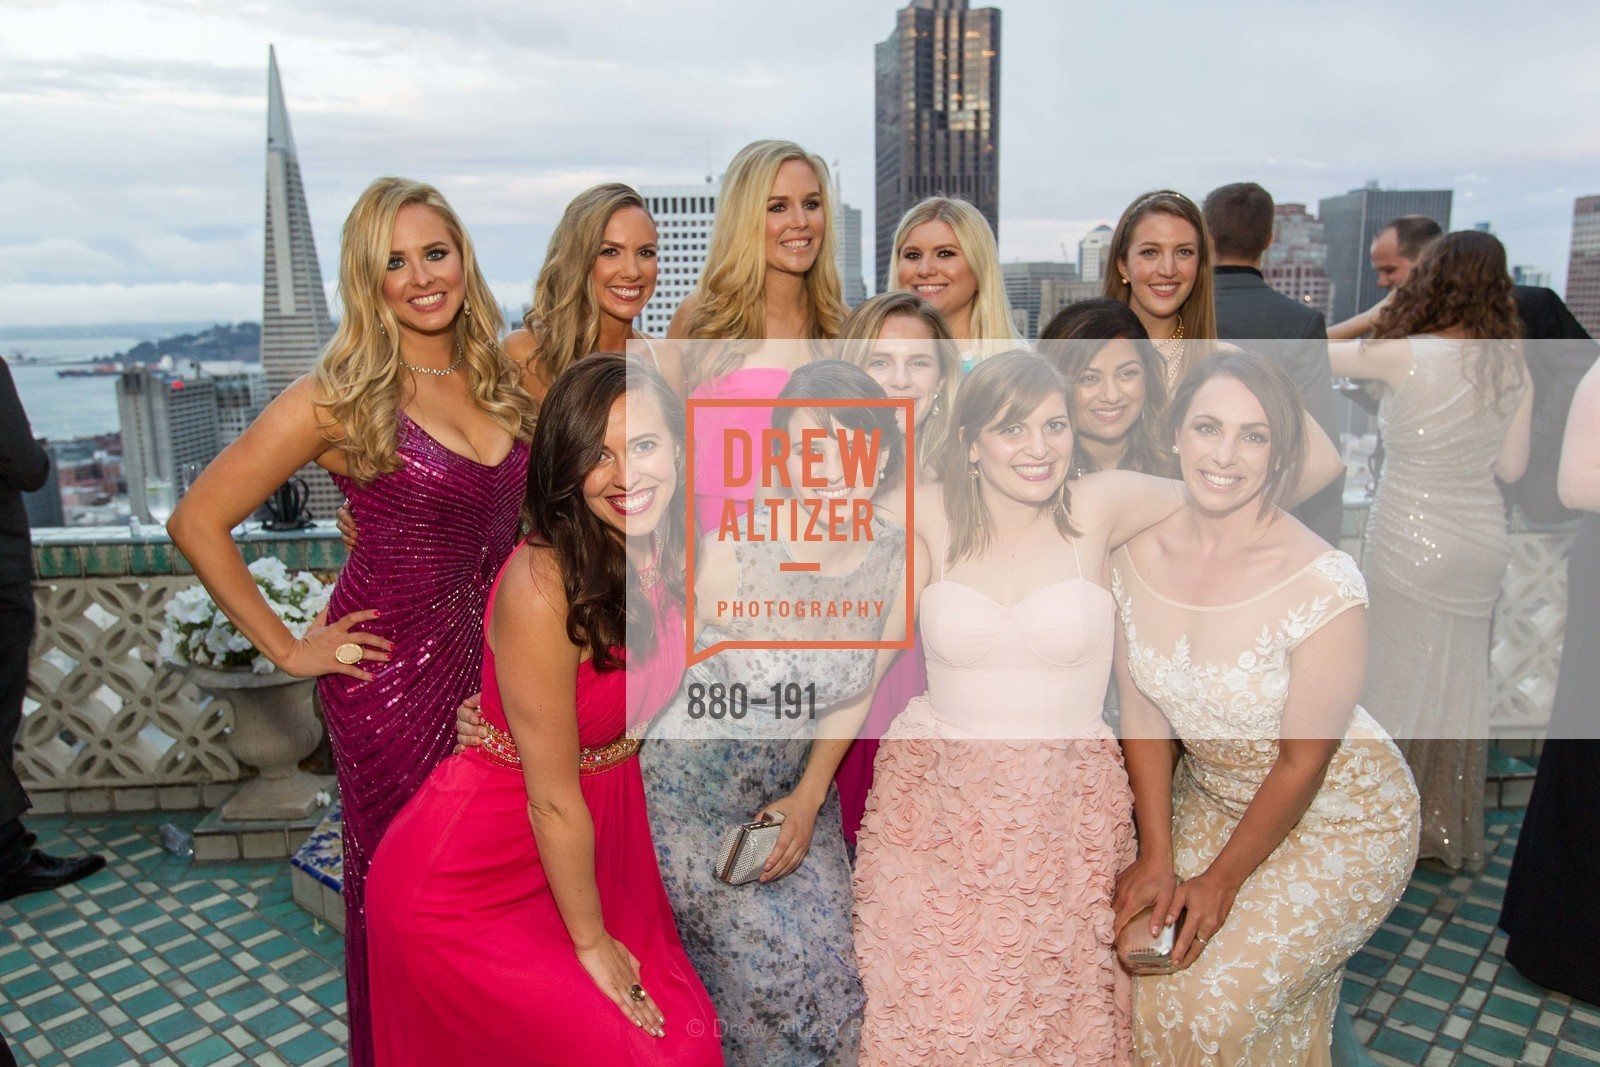 Elizabeth Sgarrella, Michelle Bertino, Bailey Douglass, Cambria Steel, Summer McCormick, Jonna Constantine, Priya Saiprasad, Julia Allyn, Genevieve Haight, Spinsters of San Francisco Annual Ball 2015, Penthouse at the Fairmont San Francisco (950 Mason Street). 950 Mason Street, June 28th, 2015,Drew Altizer, Drew Altizer Photography, full-service agency, private events, San Francisco photographer, photographer california